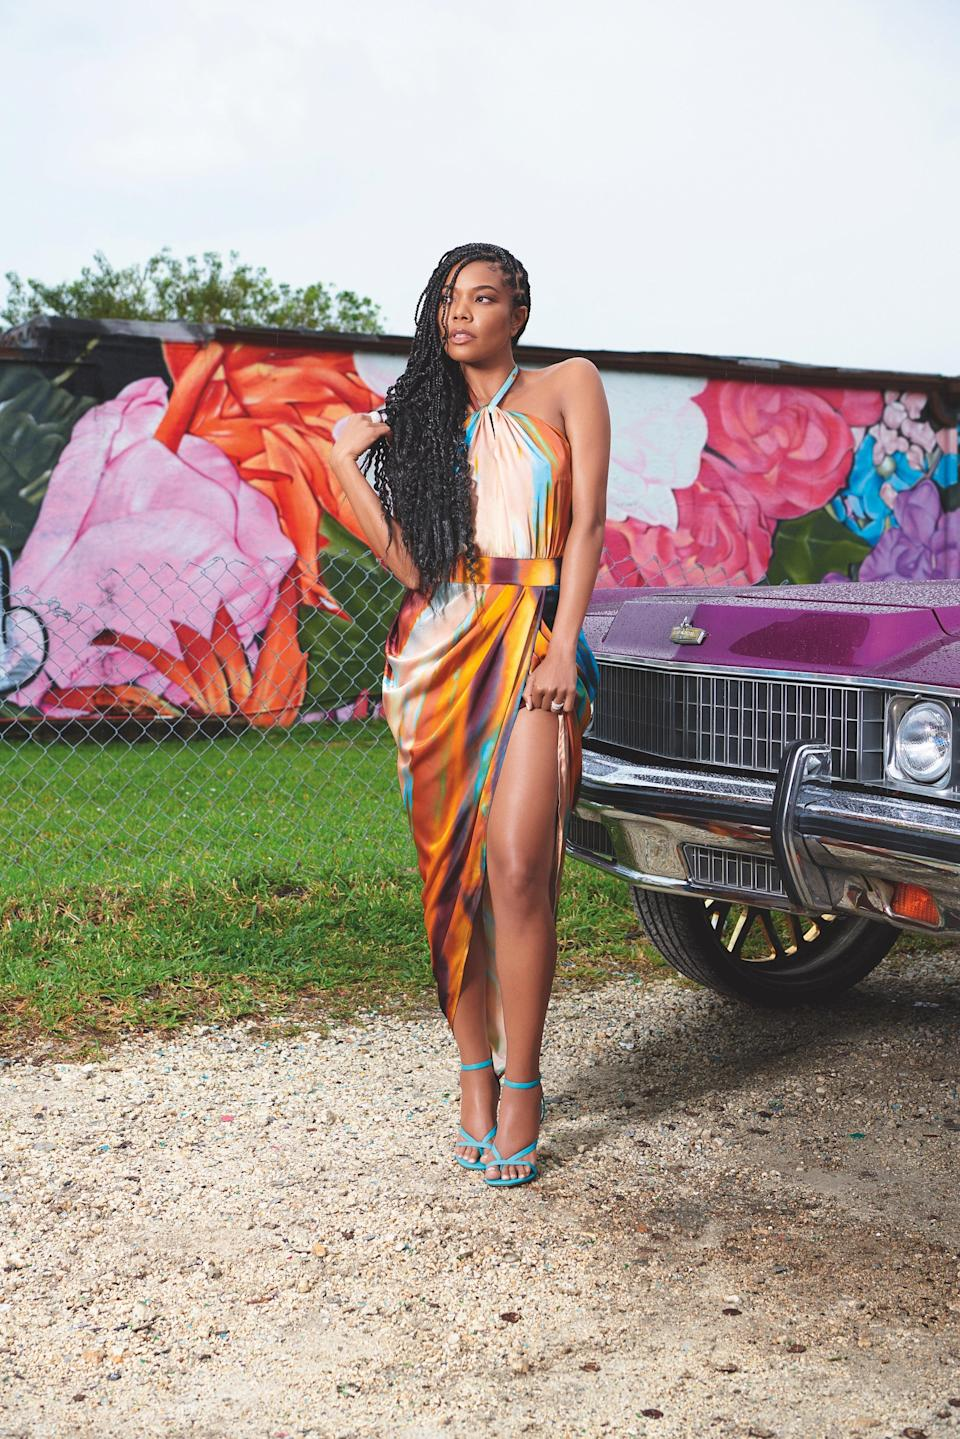 """<br> <br> <strong>New York & Company x Gabrielle Union</strong> Print Halter Dress, $, available at <a href=""""https://go.skimresources.com/?id=30283X879131&url=https%3A%2F%2Fwww.nyandcompany.com%2Fprint-halter-dress-gabrielle-union-collection%2FA-prod20620039%2F%3FAn%3D675084437%26prodNo%3D2"""" rel=""""nofollow noopener"""" target=""""_blank"""" data-ylk=""""slk:New York & Company"""" class=""""link rapid-noclick-resp"""">New York & Company</a> <span class=""""copyright"""">Photographed by Nino Muñoz.</span>"""